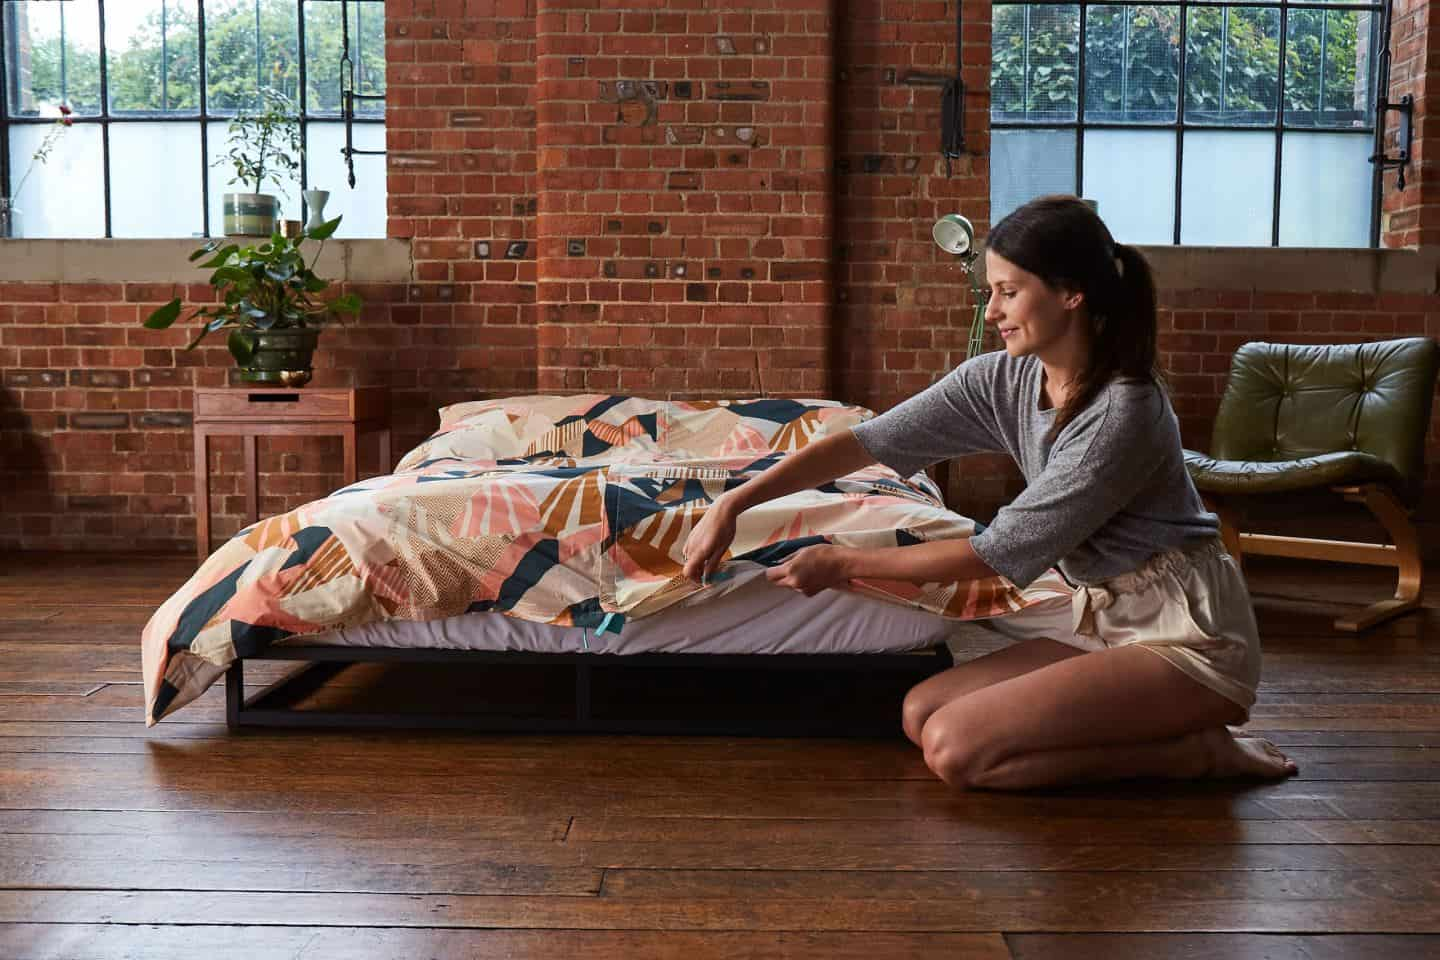 Koa revolutionary duvet cover. A women zips up the base of the duvet cover. The easy way to change a duvet cover